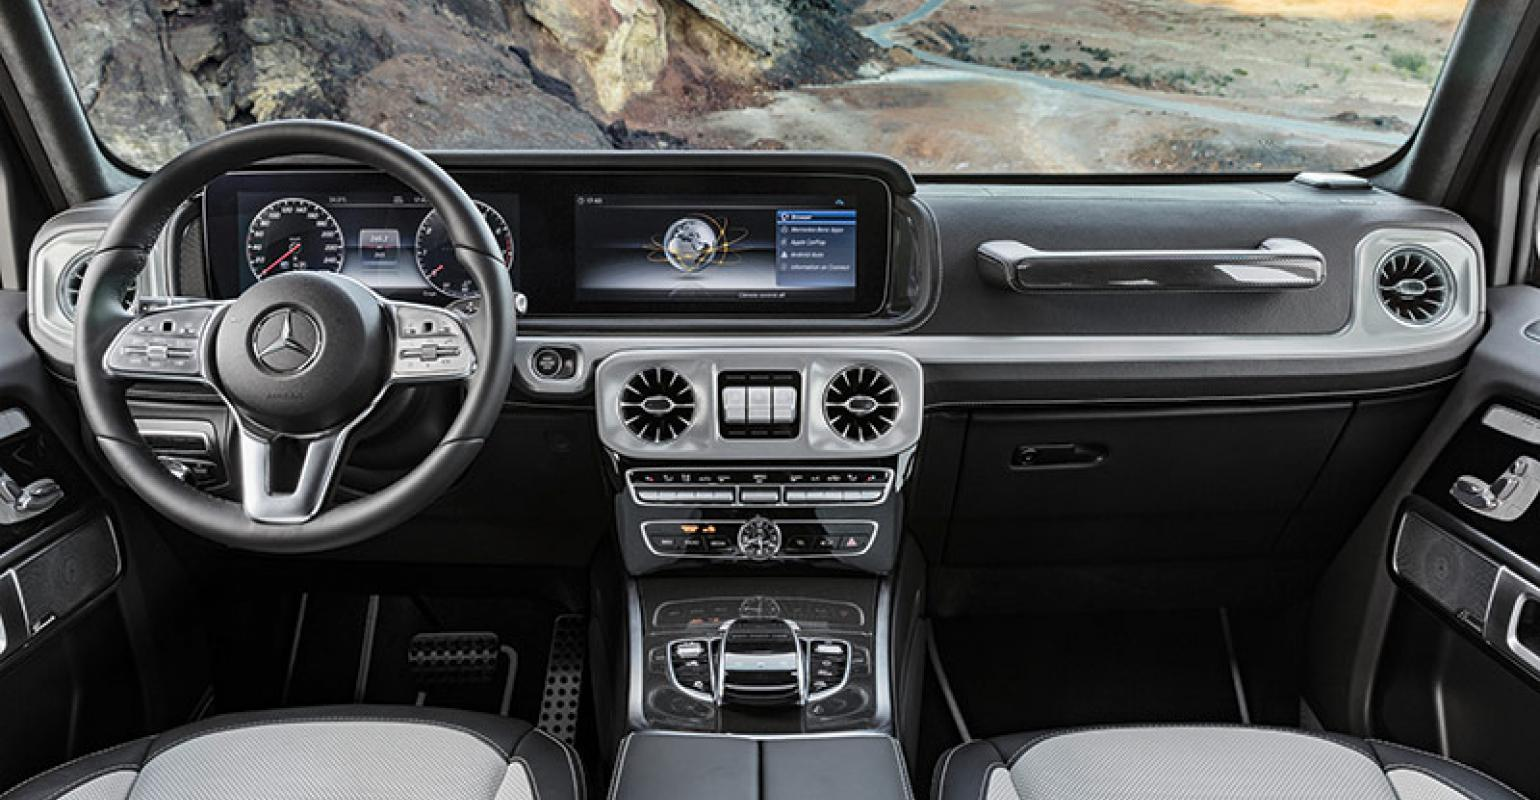 In doing so, you'll reveal results pointing not only to where you can find mercedes all models but also information about what is service. Mercedes-Benz | Automaker Reveals Facelifted '18 G-Class